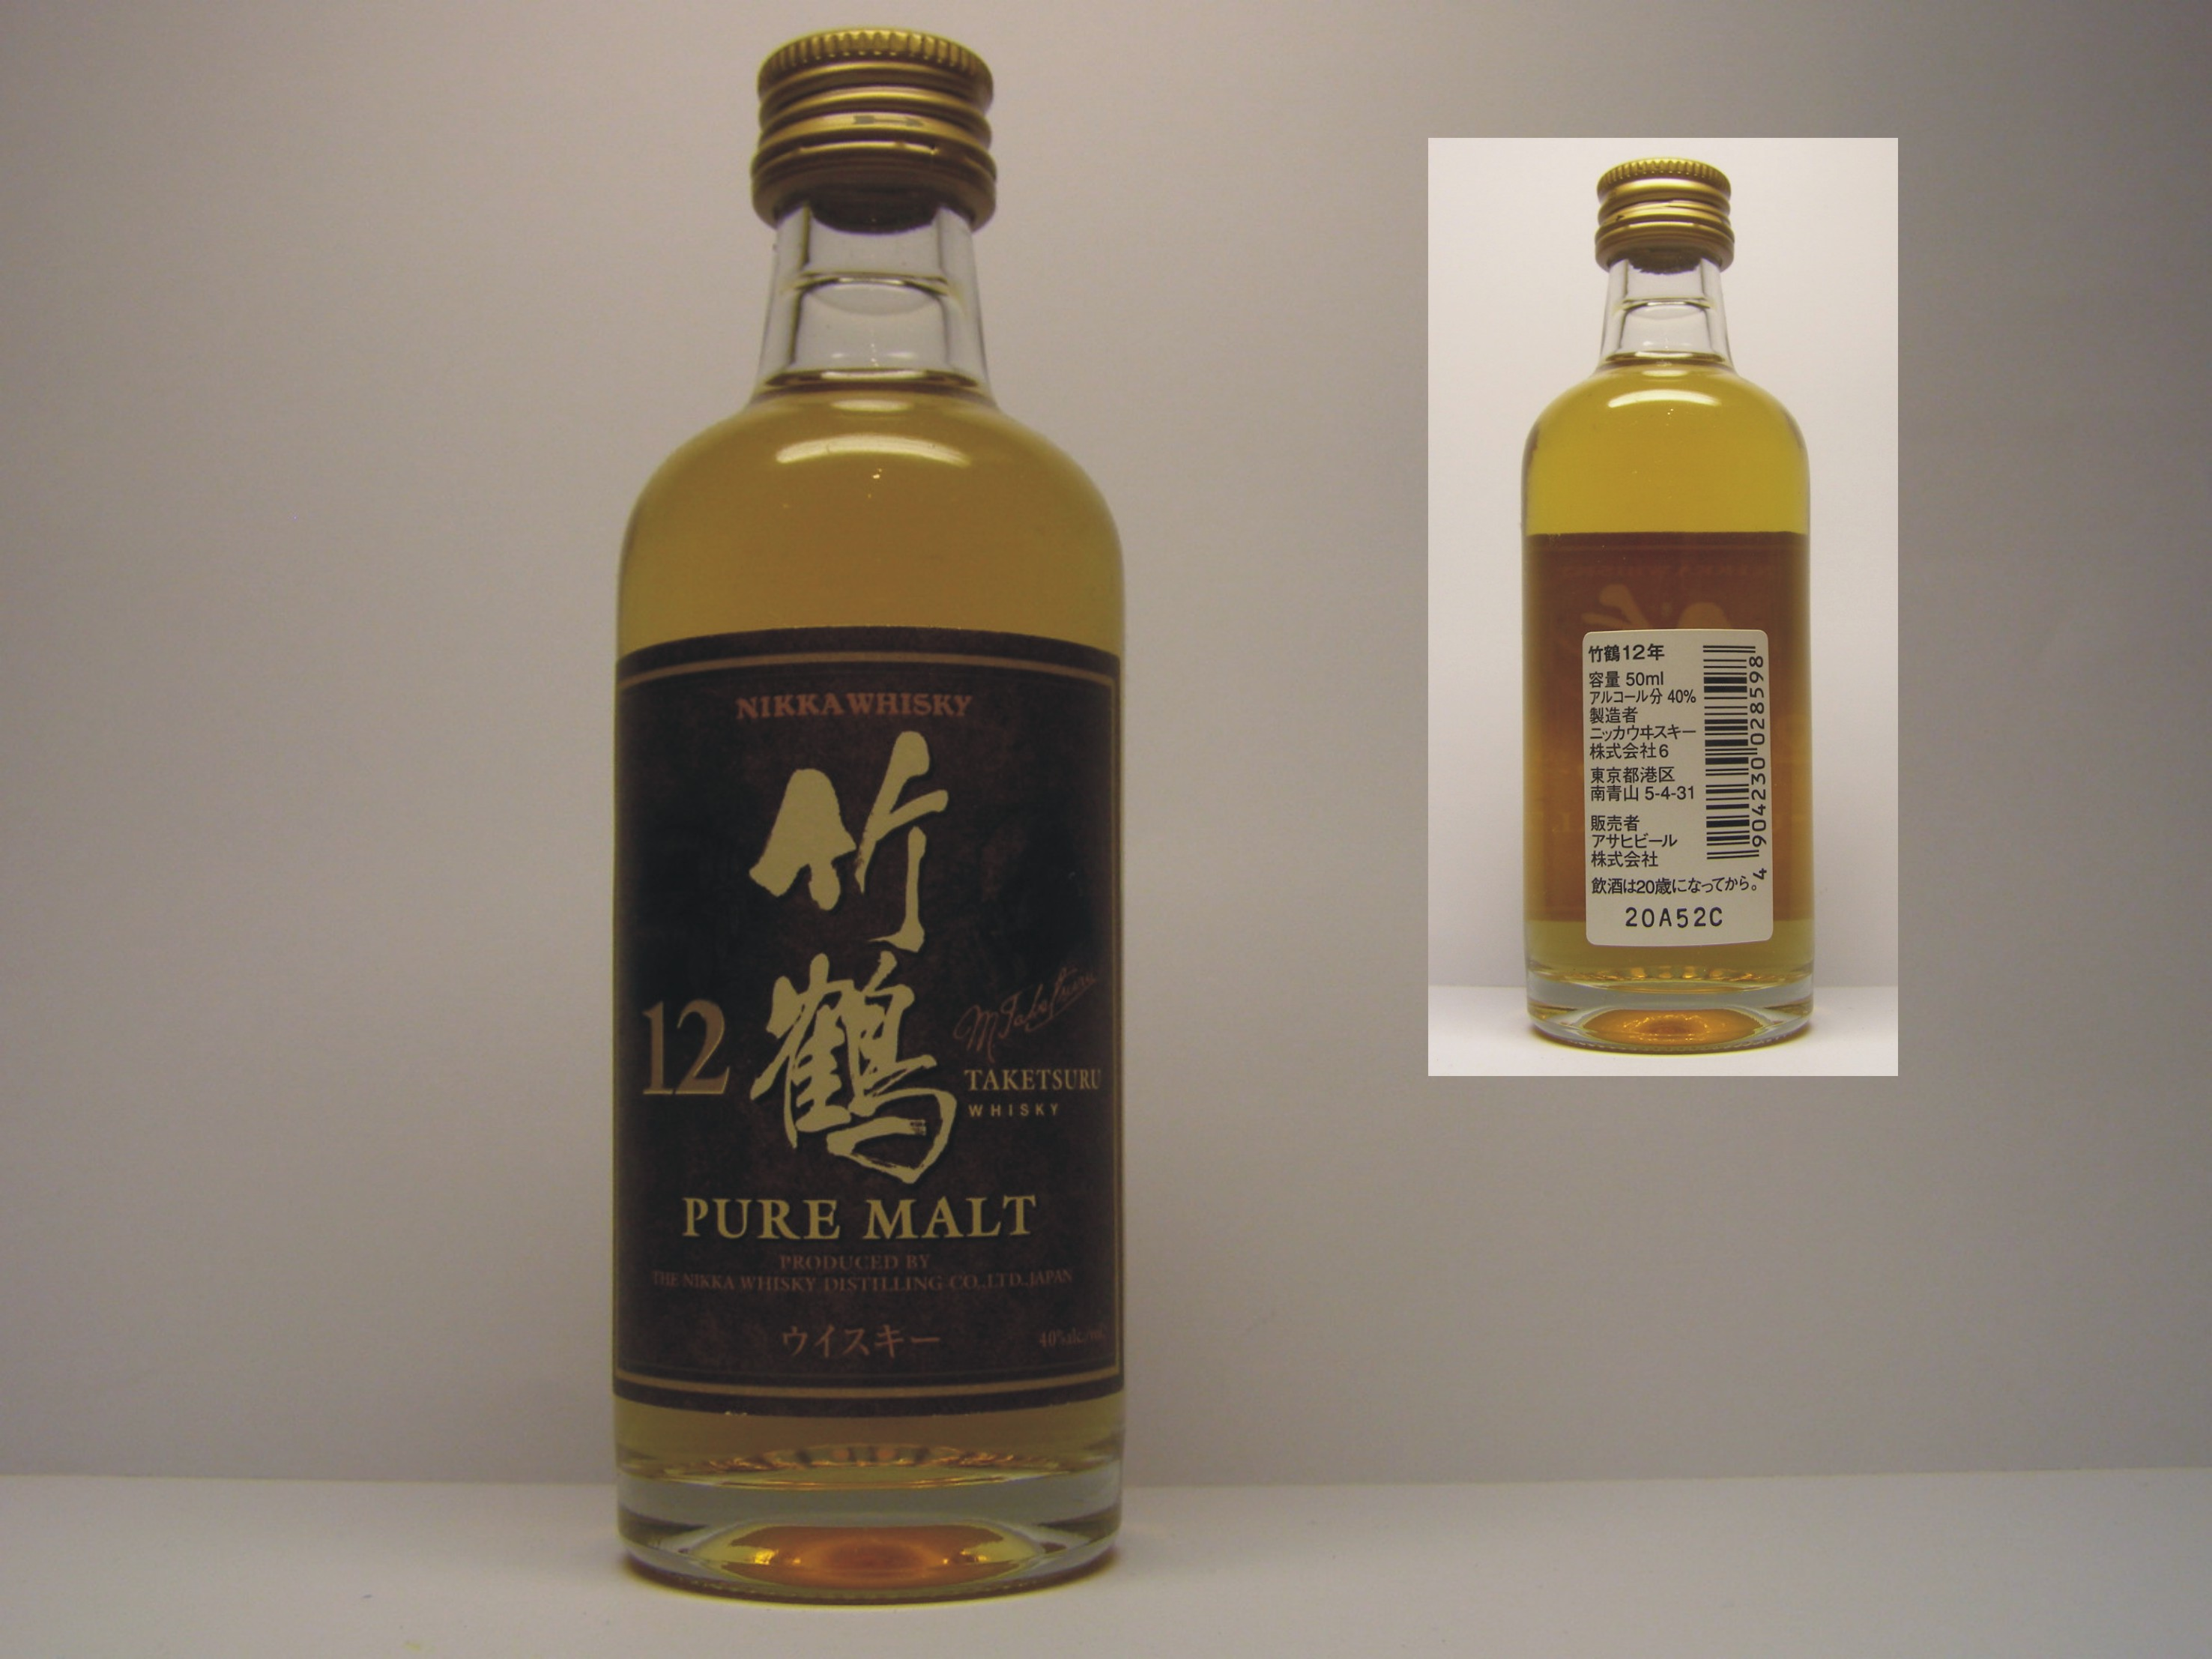 TAKETSURU 12yo Pure Malt Whisky